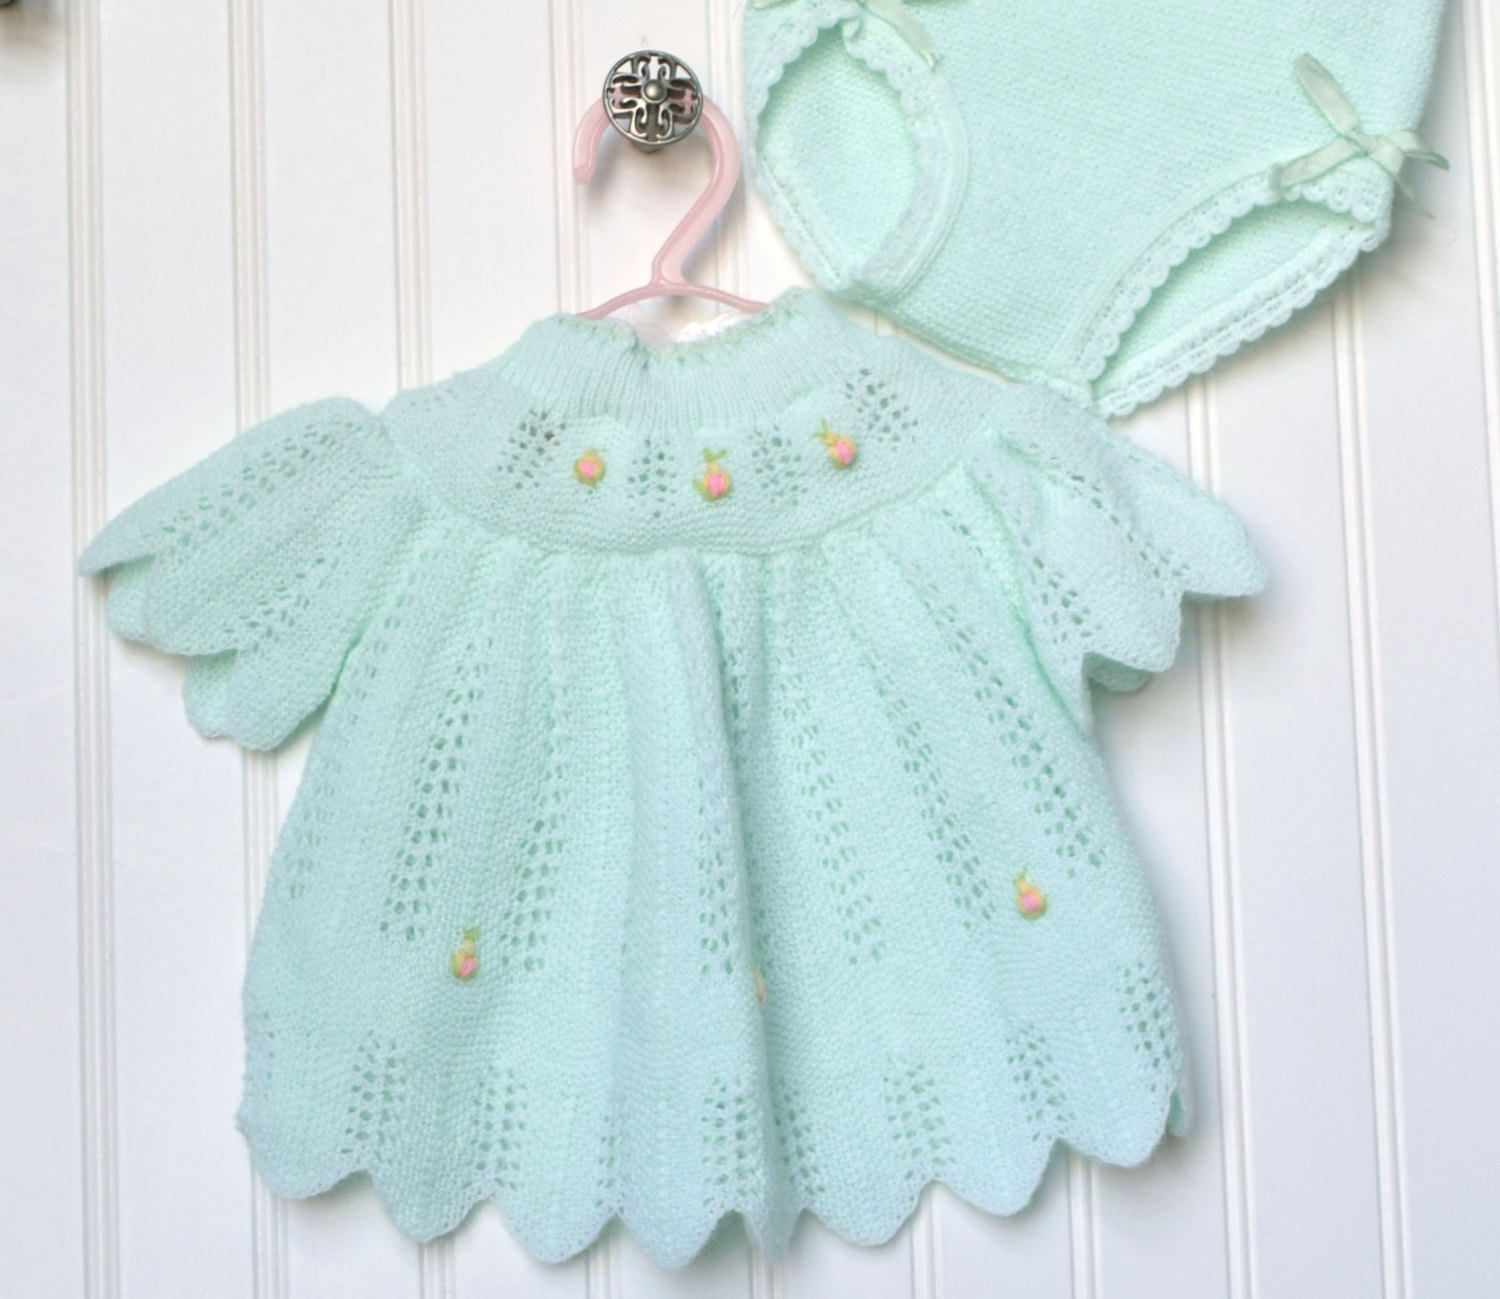 Vintage Baby Dress Bloomers Size 0 6 Month Clothes Mint Green